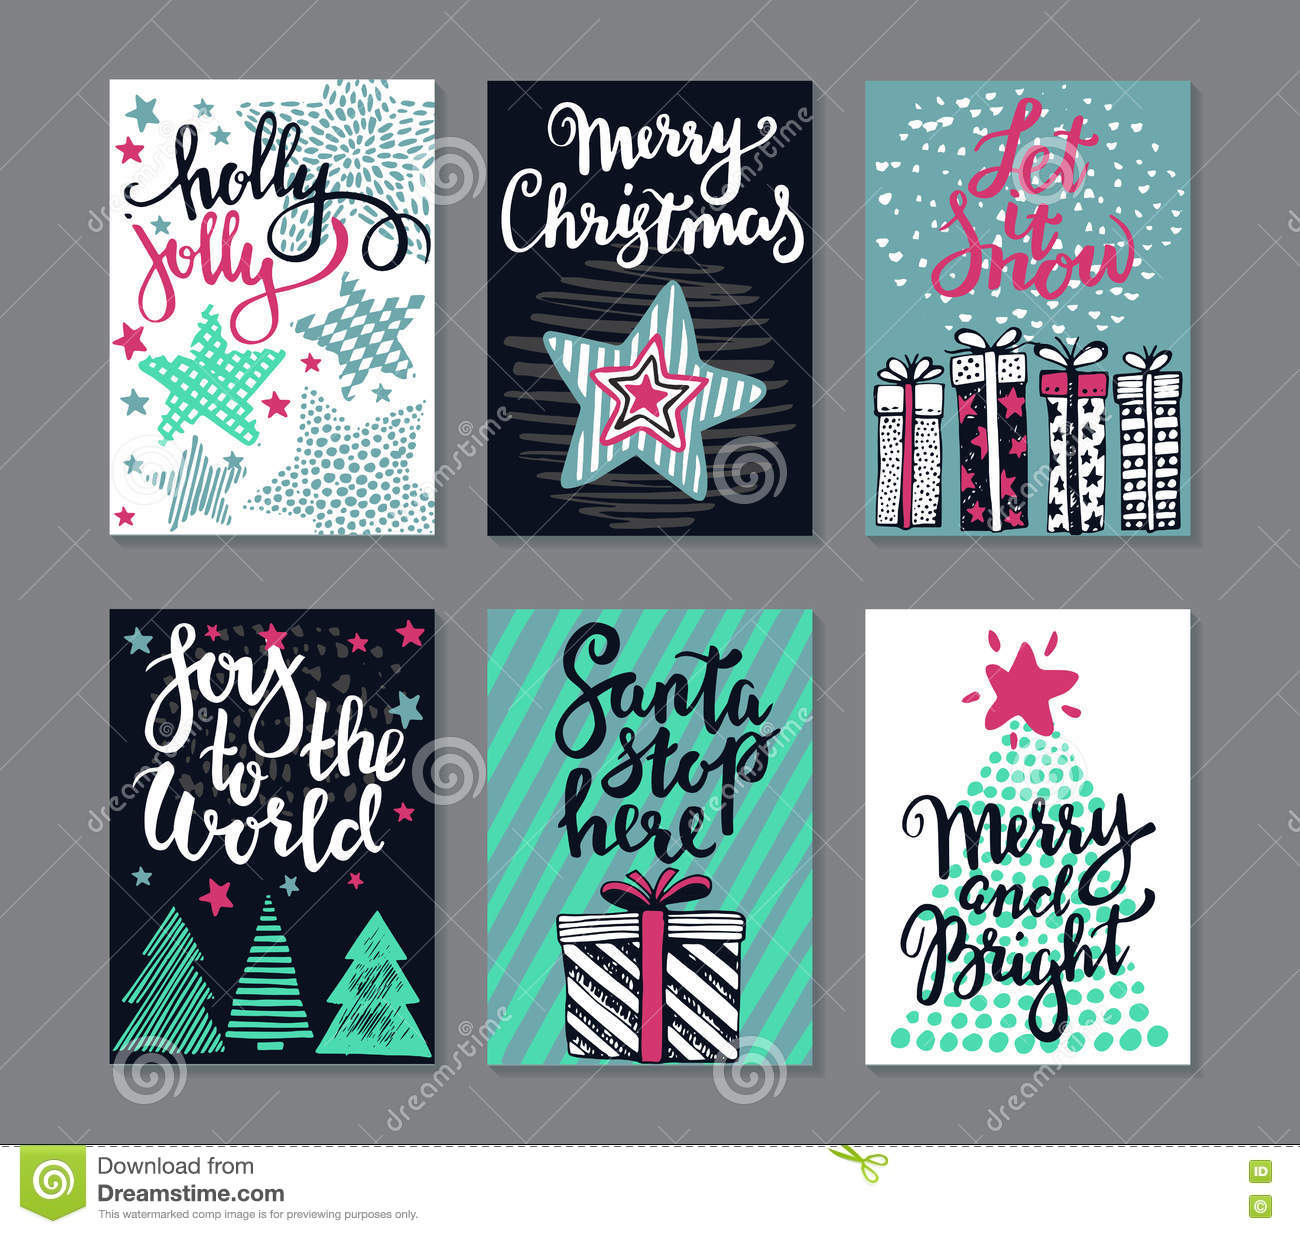 Collection of six Christmas greeting cards.